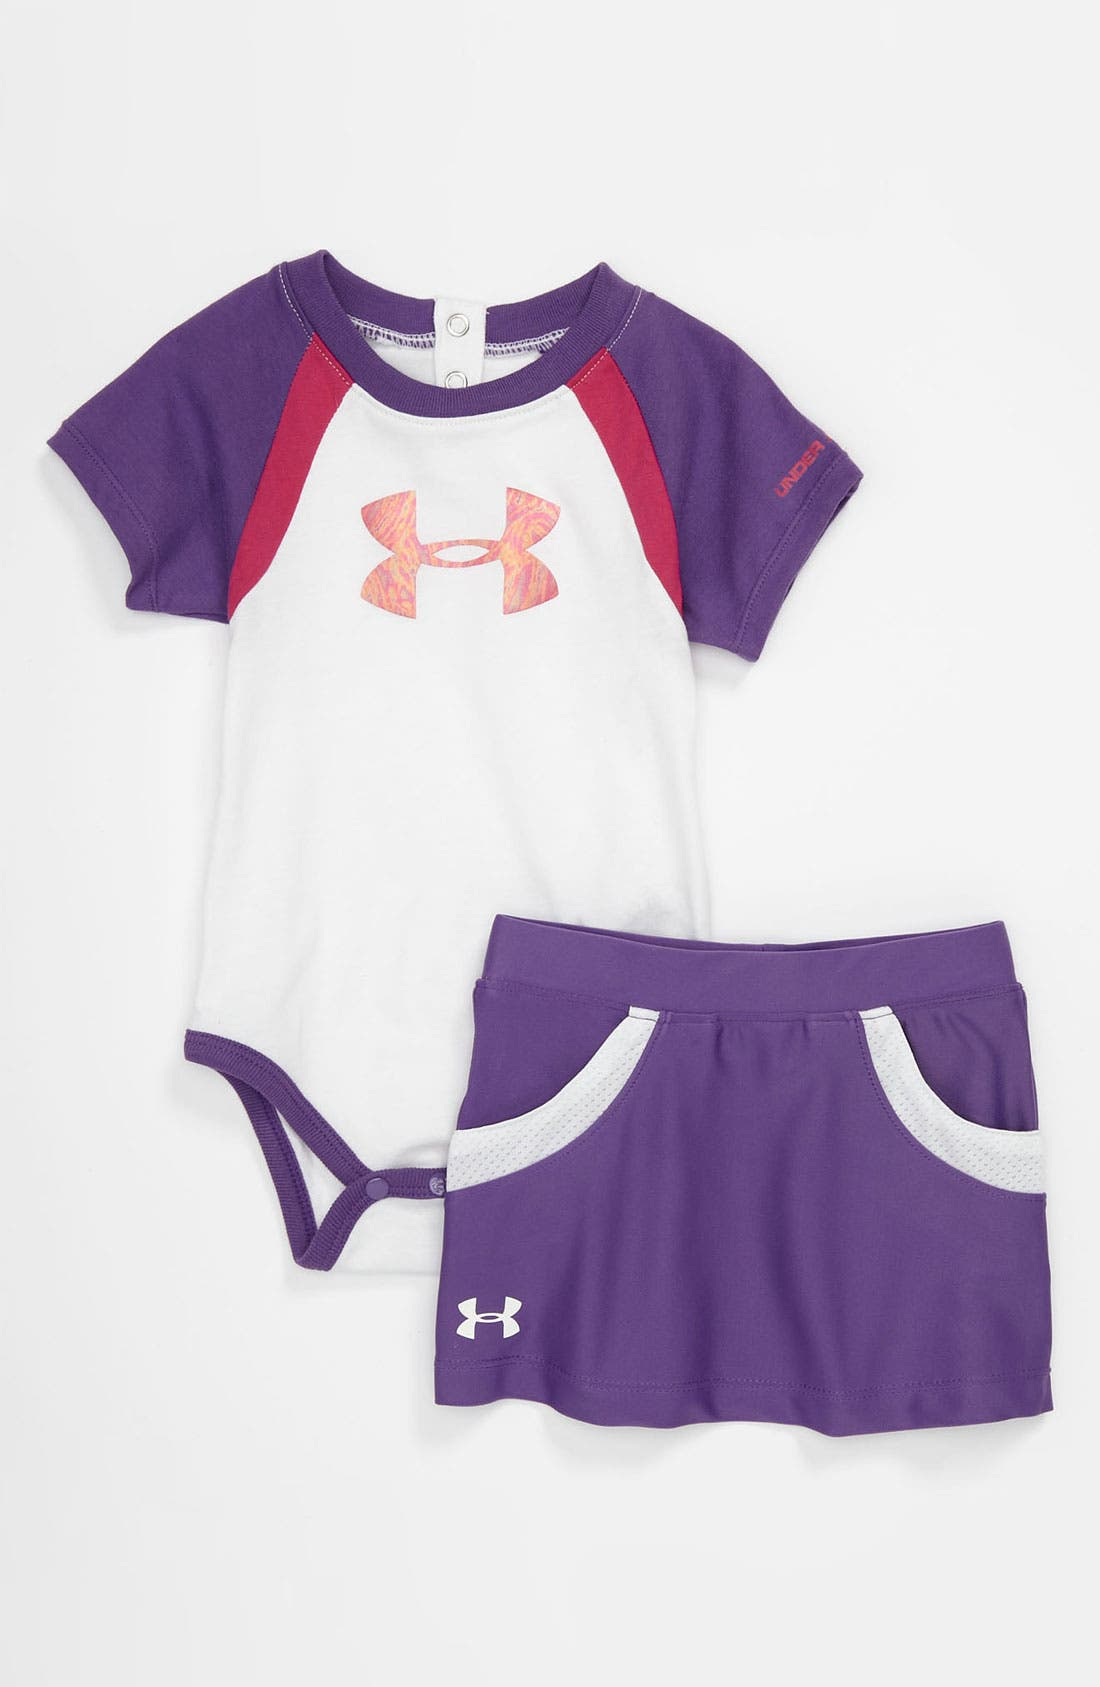 Main Image - Under Armour Bodysuit & Skirt (Baby)